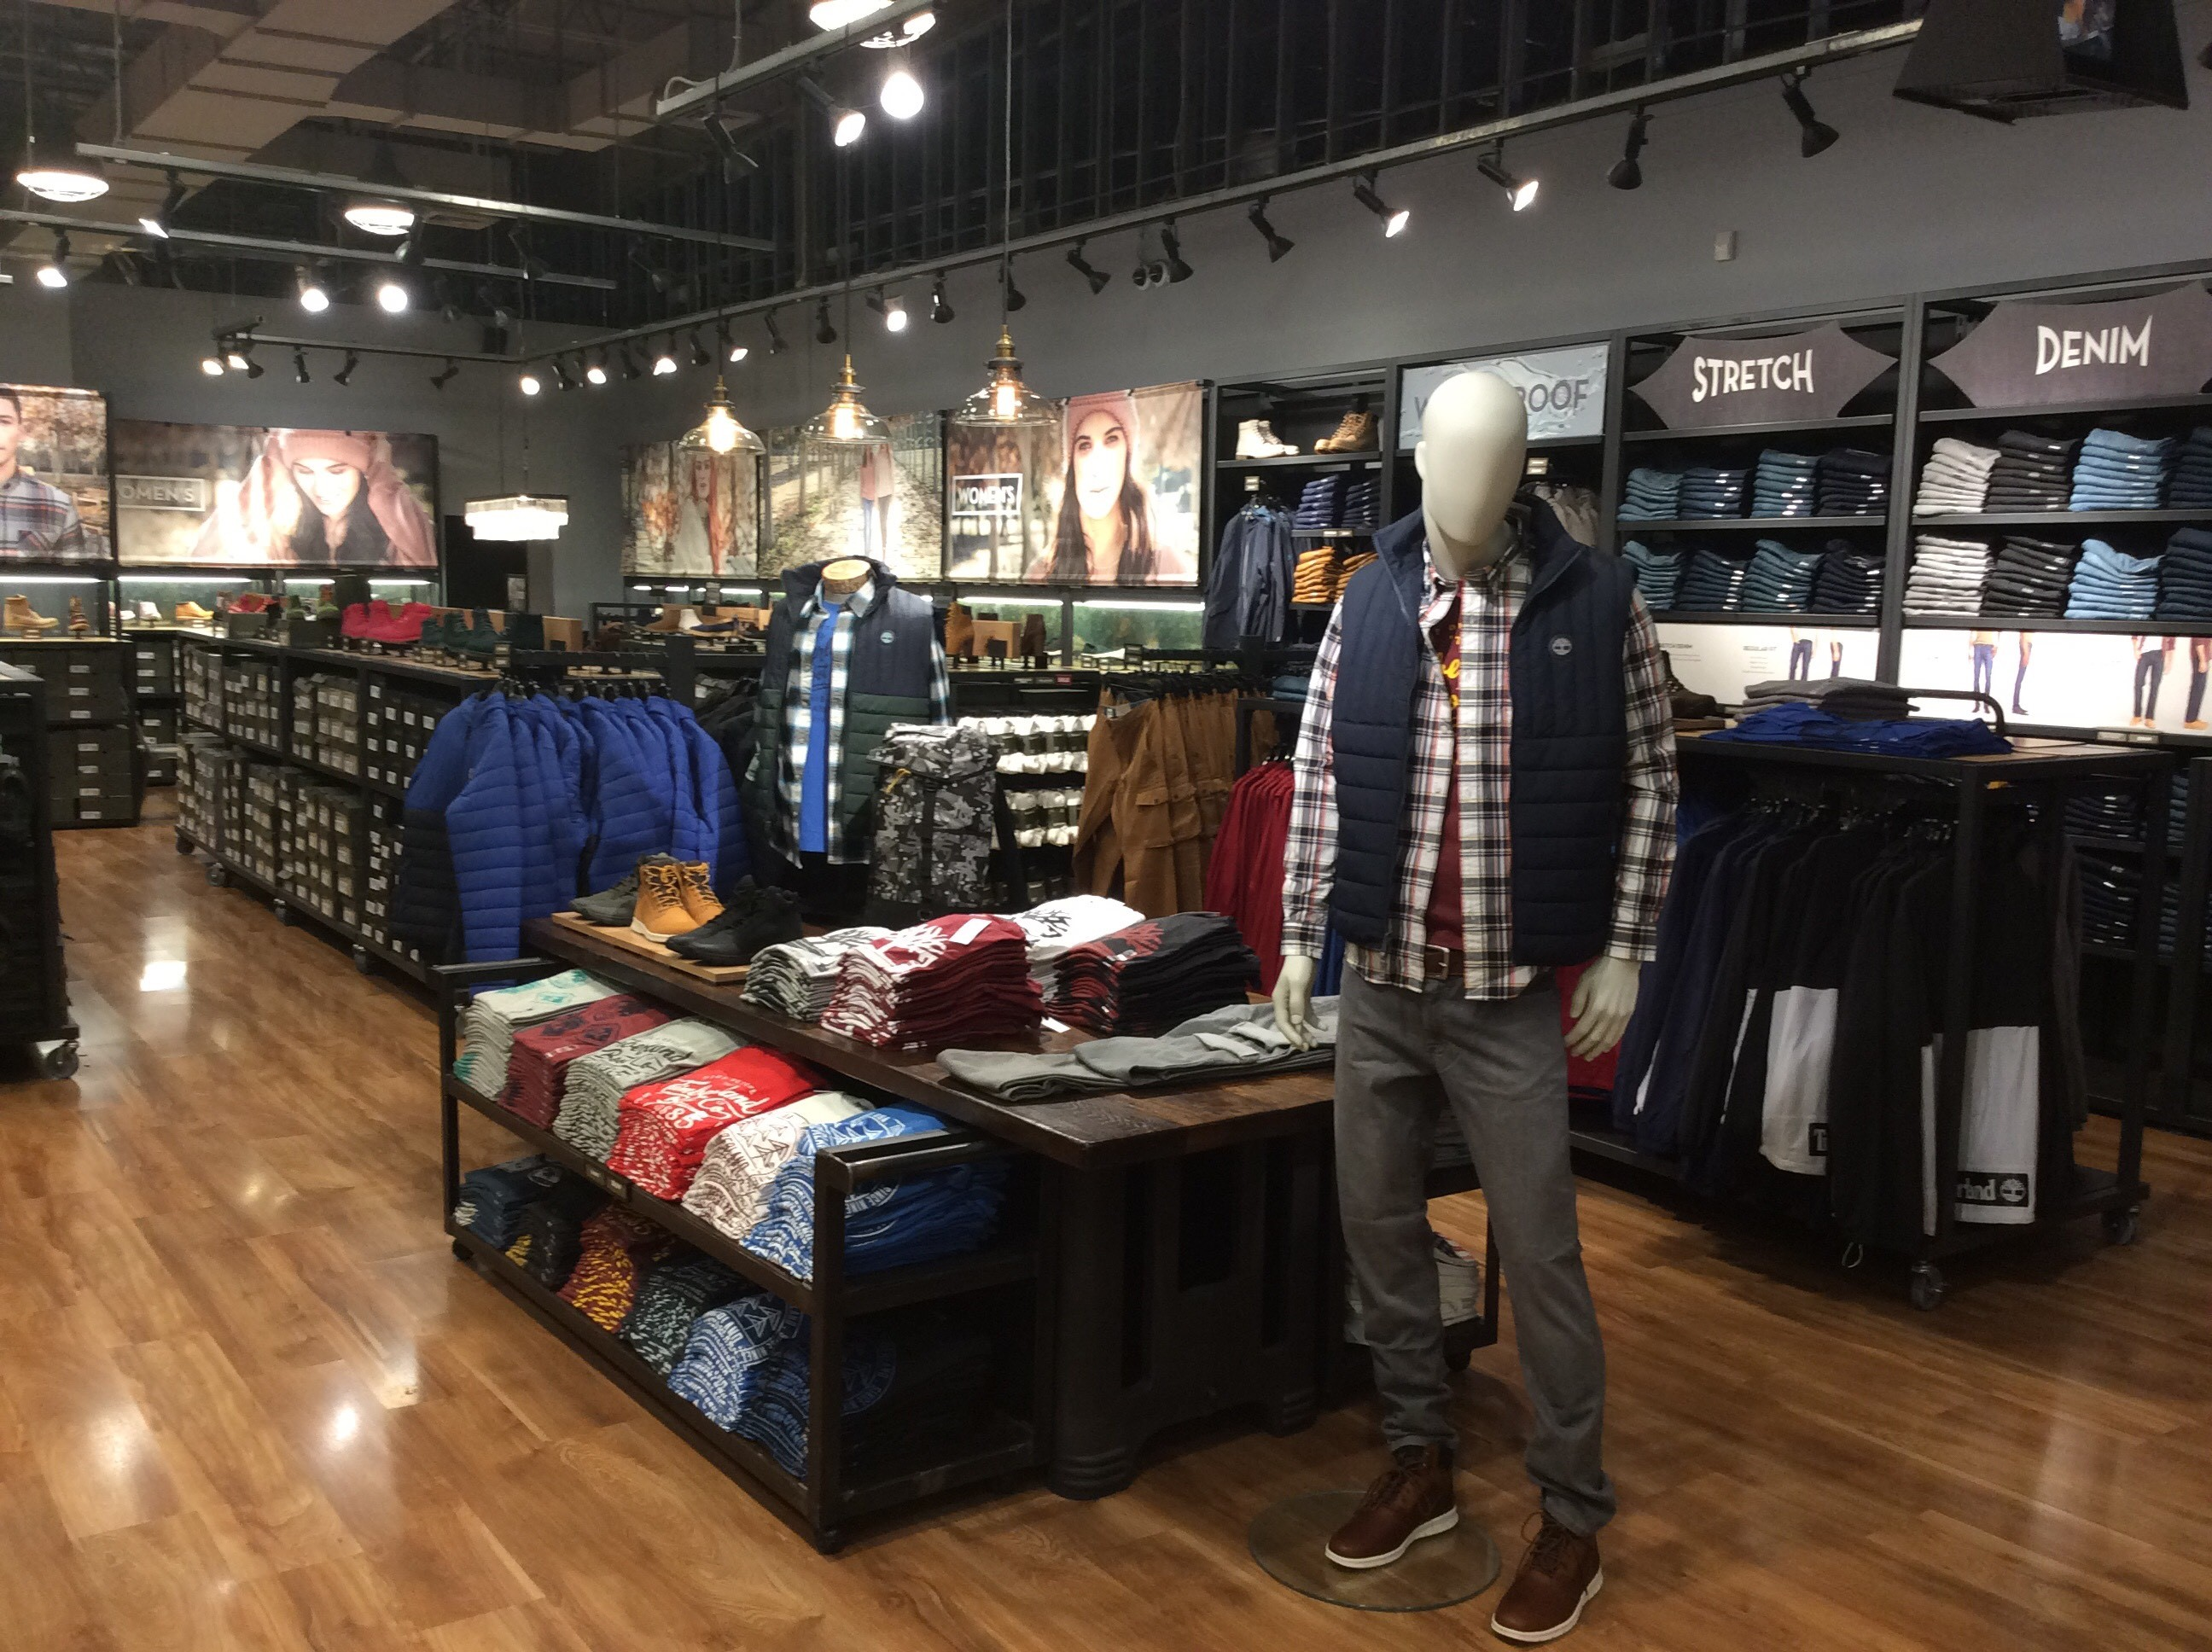 Sunrise Auto Outlet >> Timberland - Boots, Shoes, Clothing & Accessories in Sunrise, FL